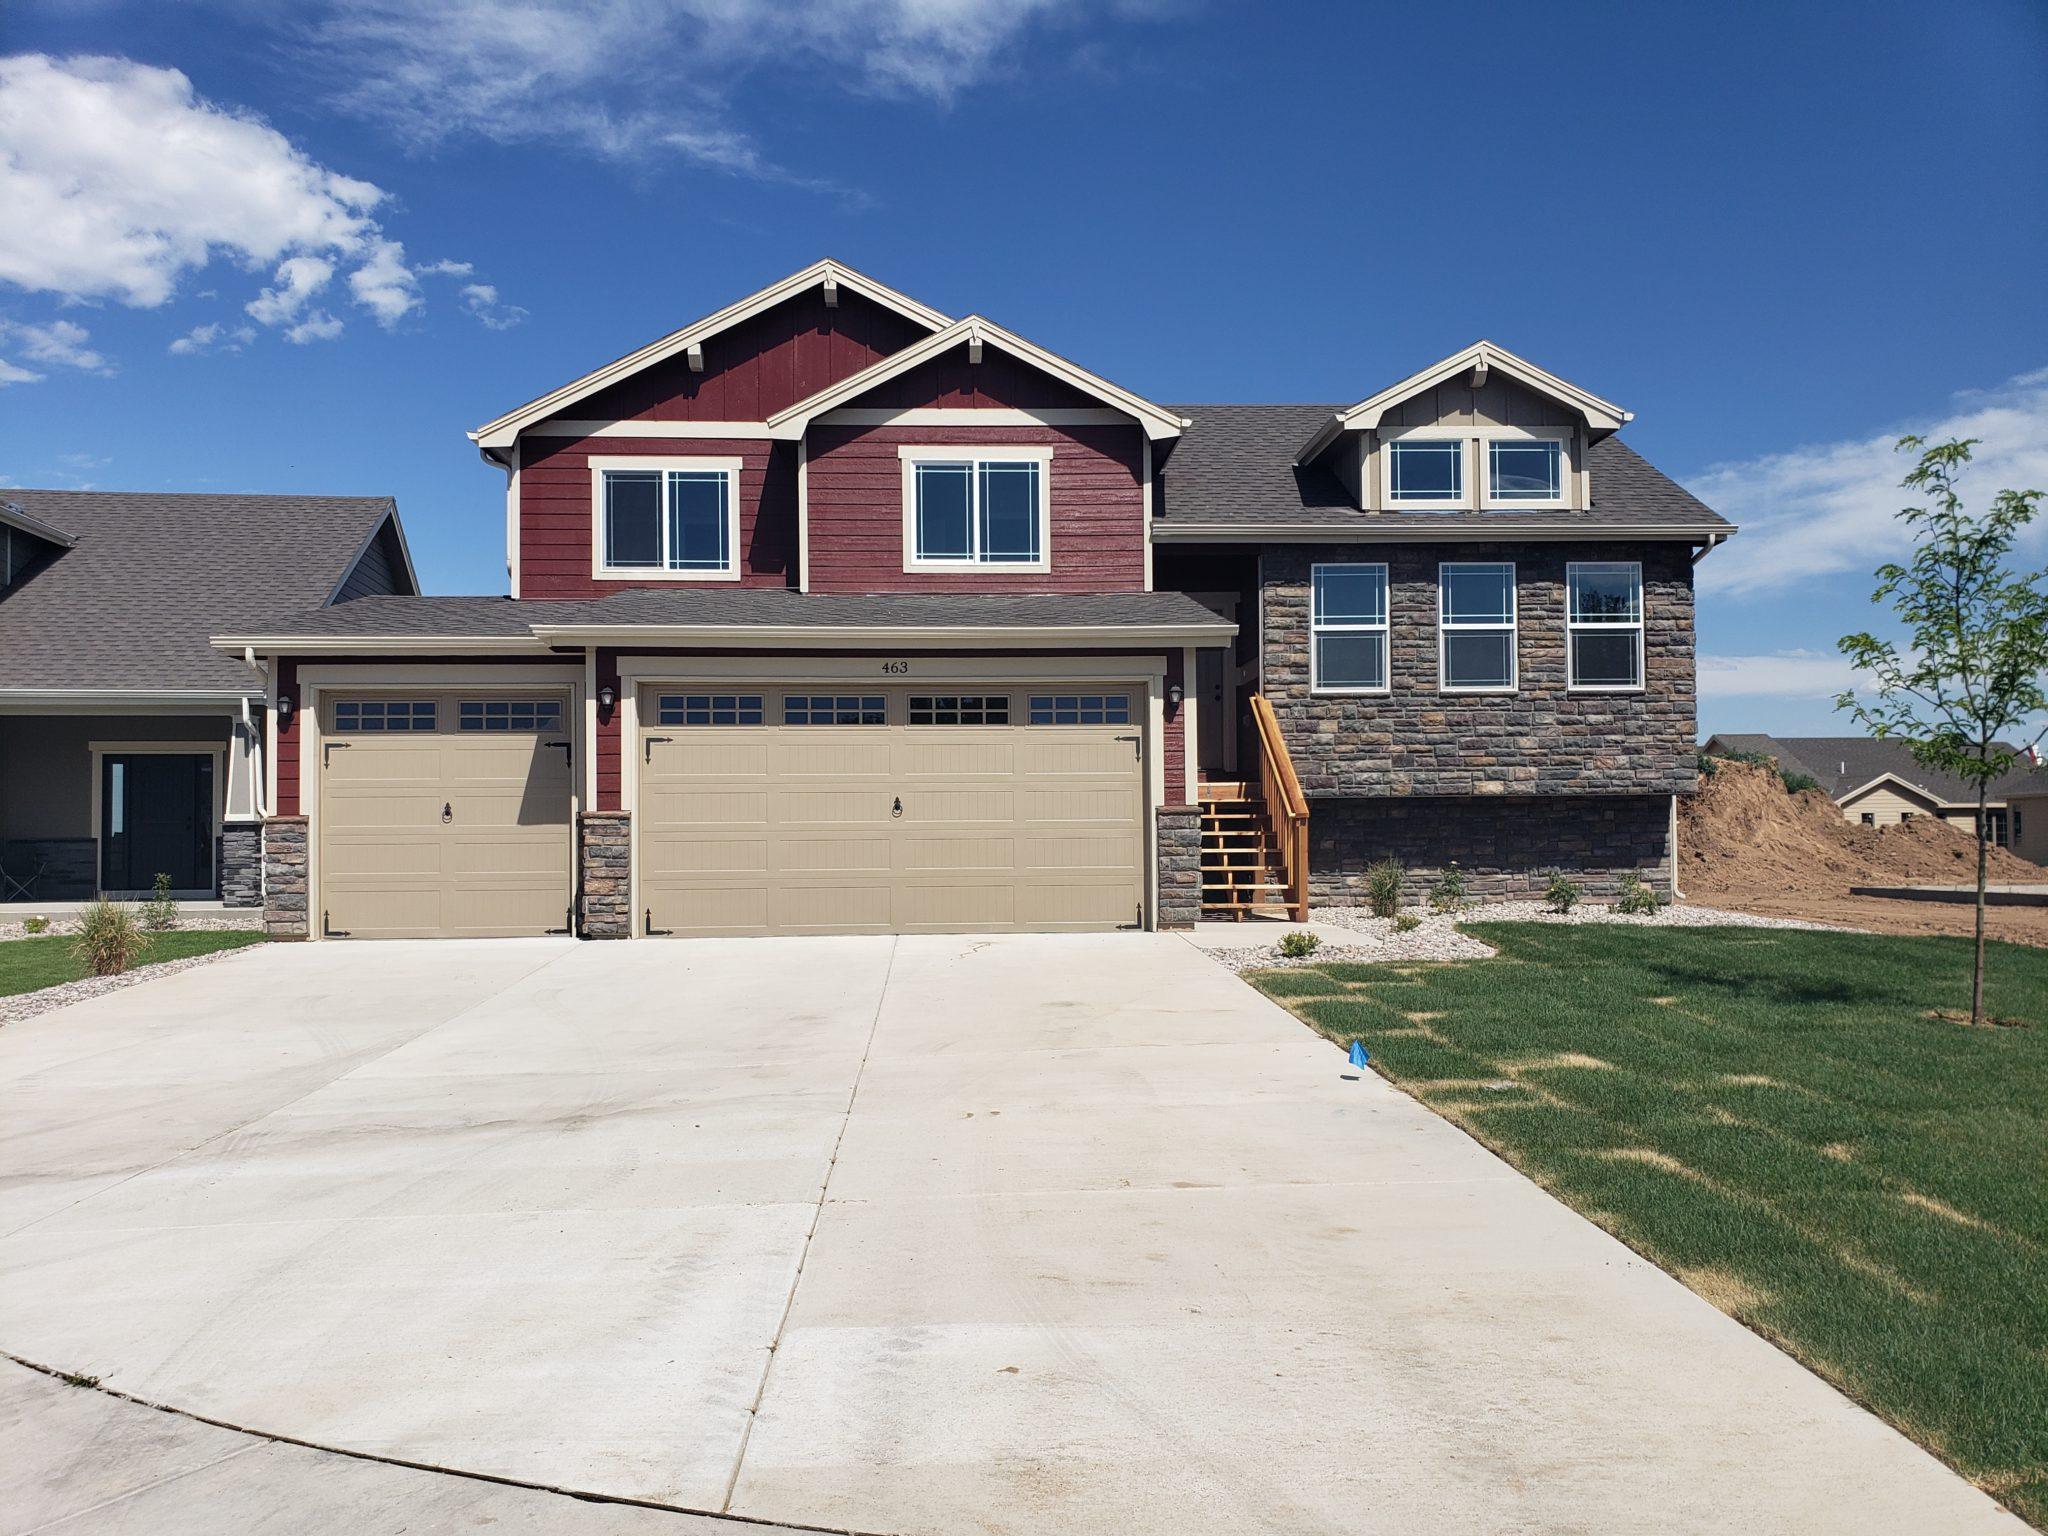 463 Deerfield Dr, Windsor, CO 80550